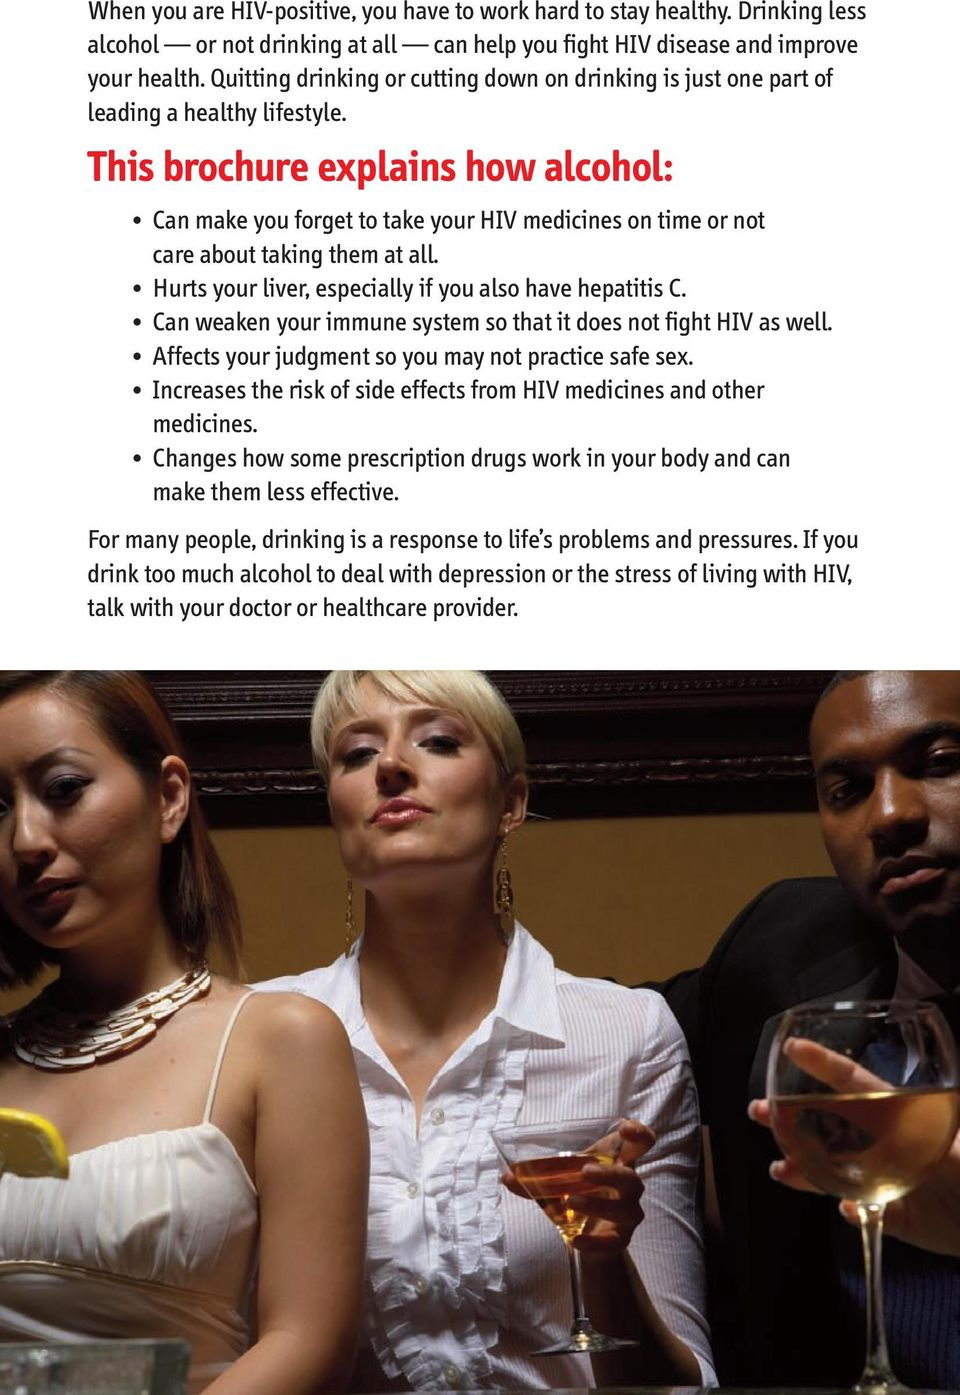 This brochure explains how alcohol: Can make you forget to take your HIV medicines on time or not care about taking them at all. Hurts your liver, especially if you also have hepatitis C.